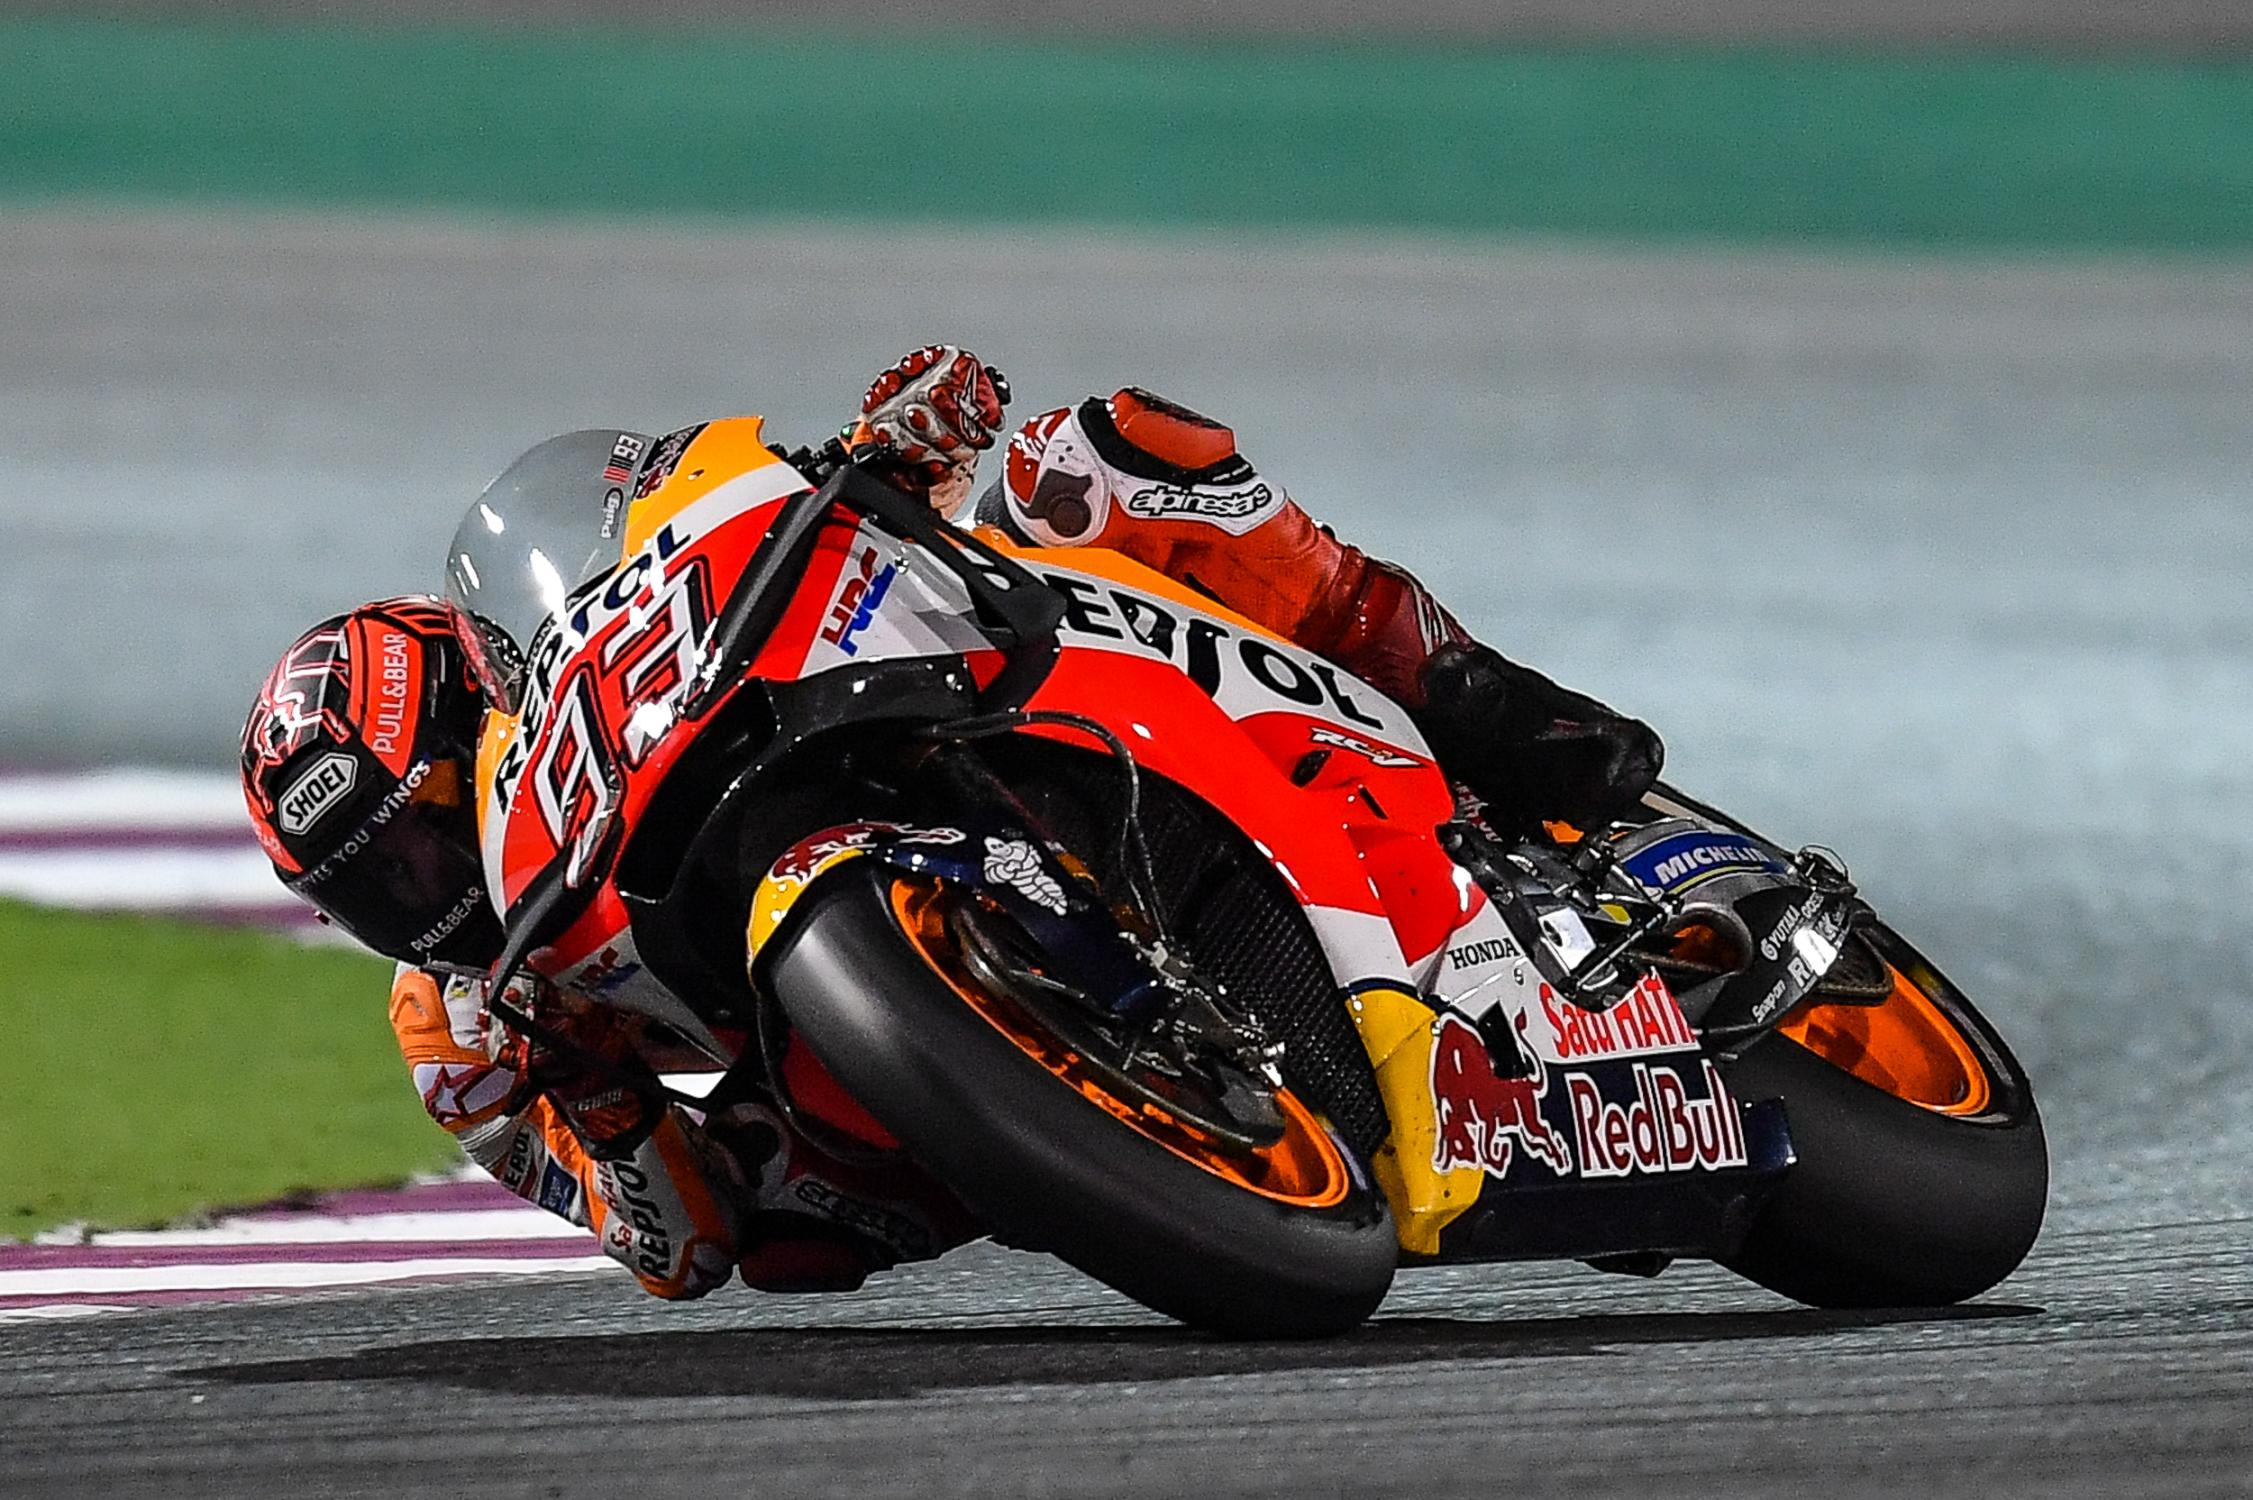 [Test] Losail 2018 93-marc-marquez-esplg5_4339.gallery_full_top_fullscreen